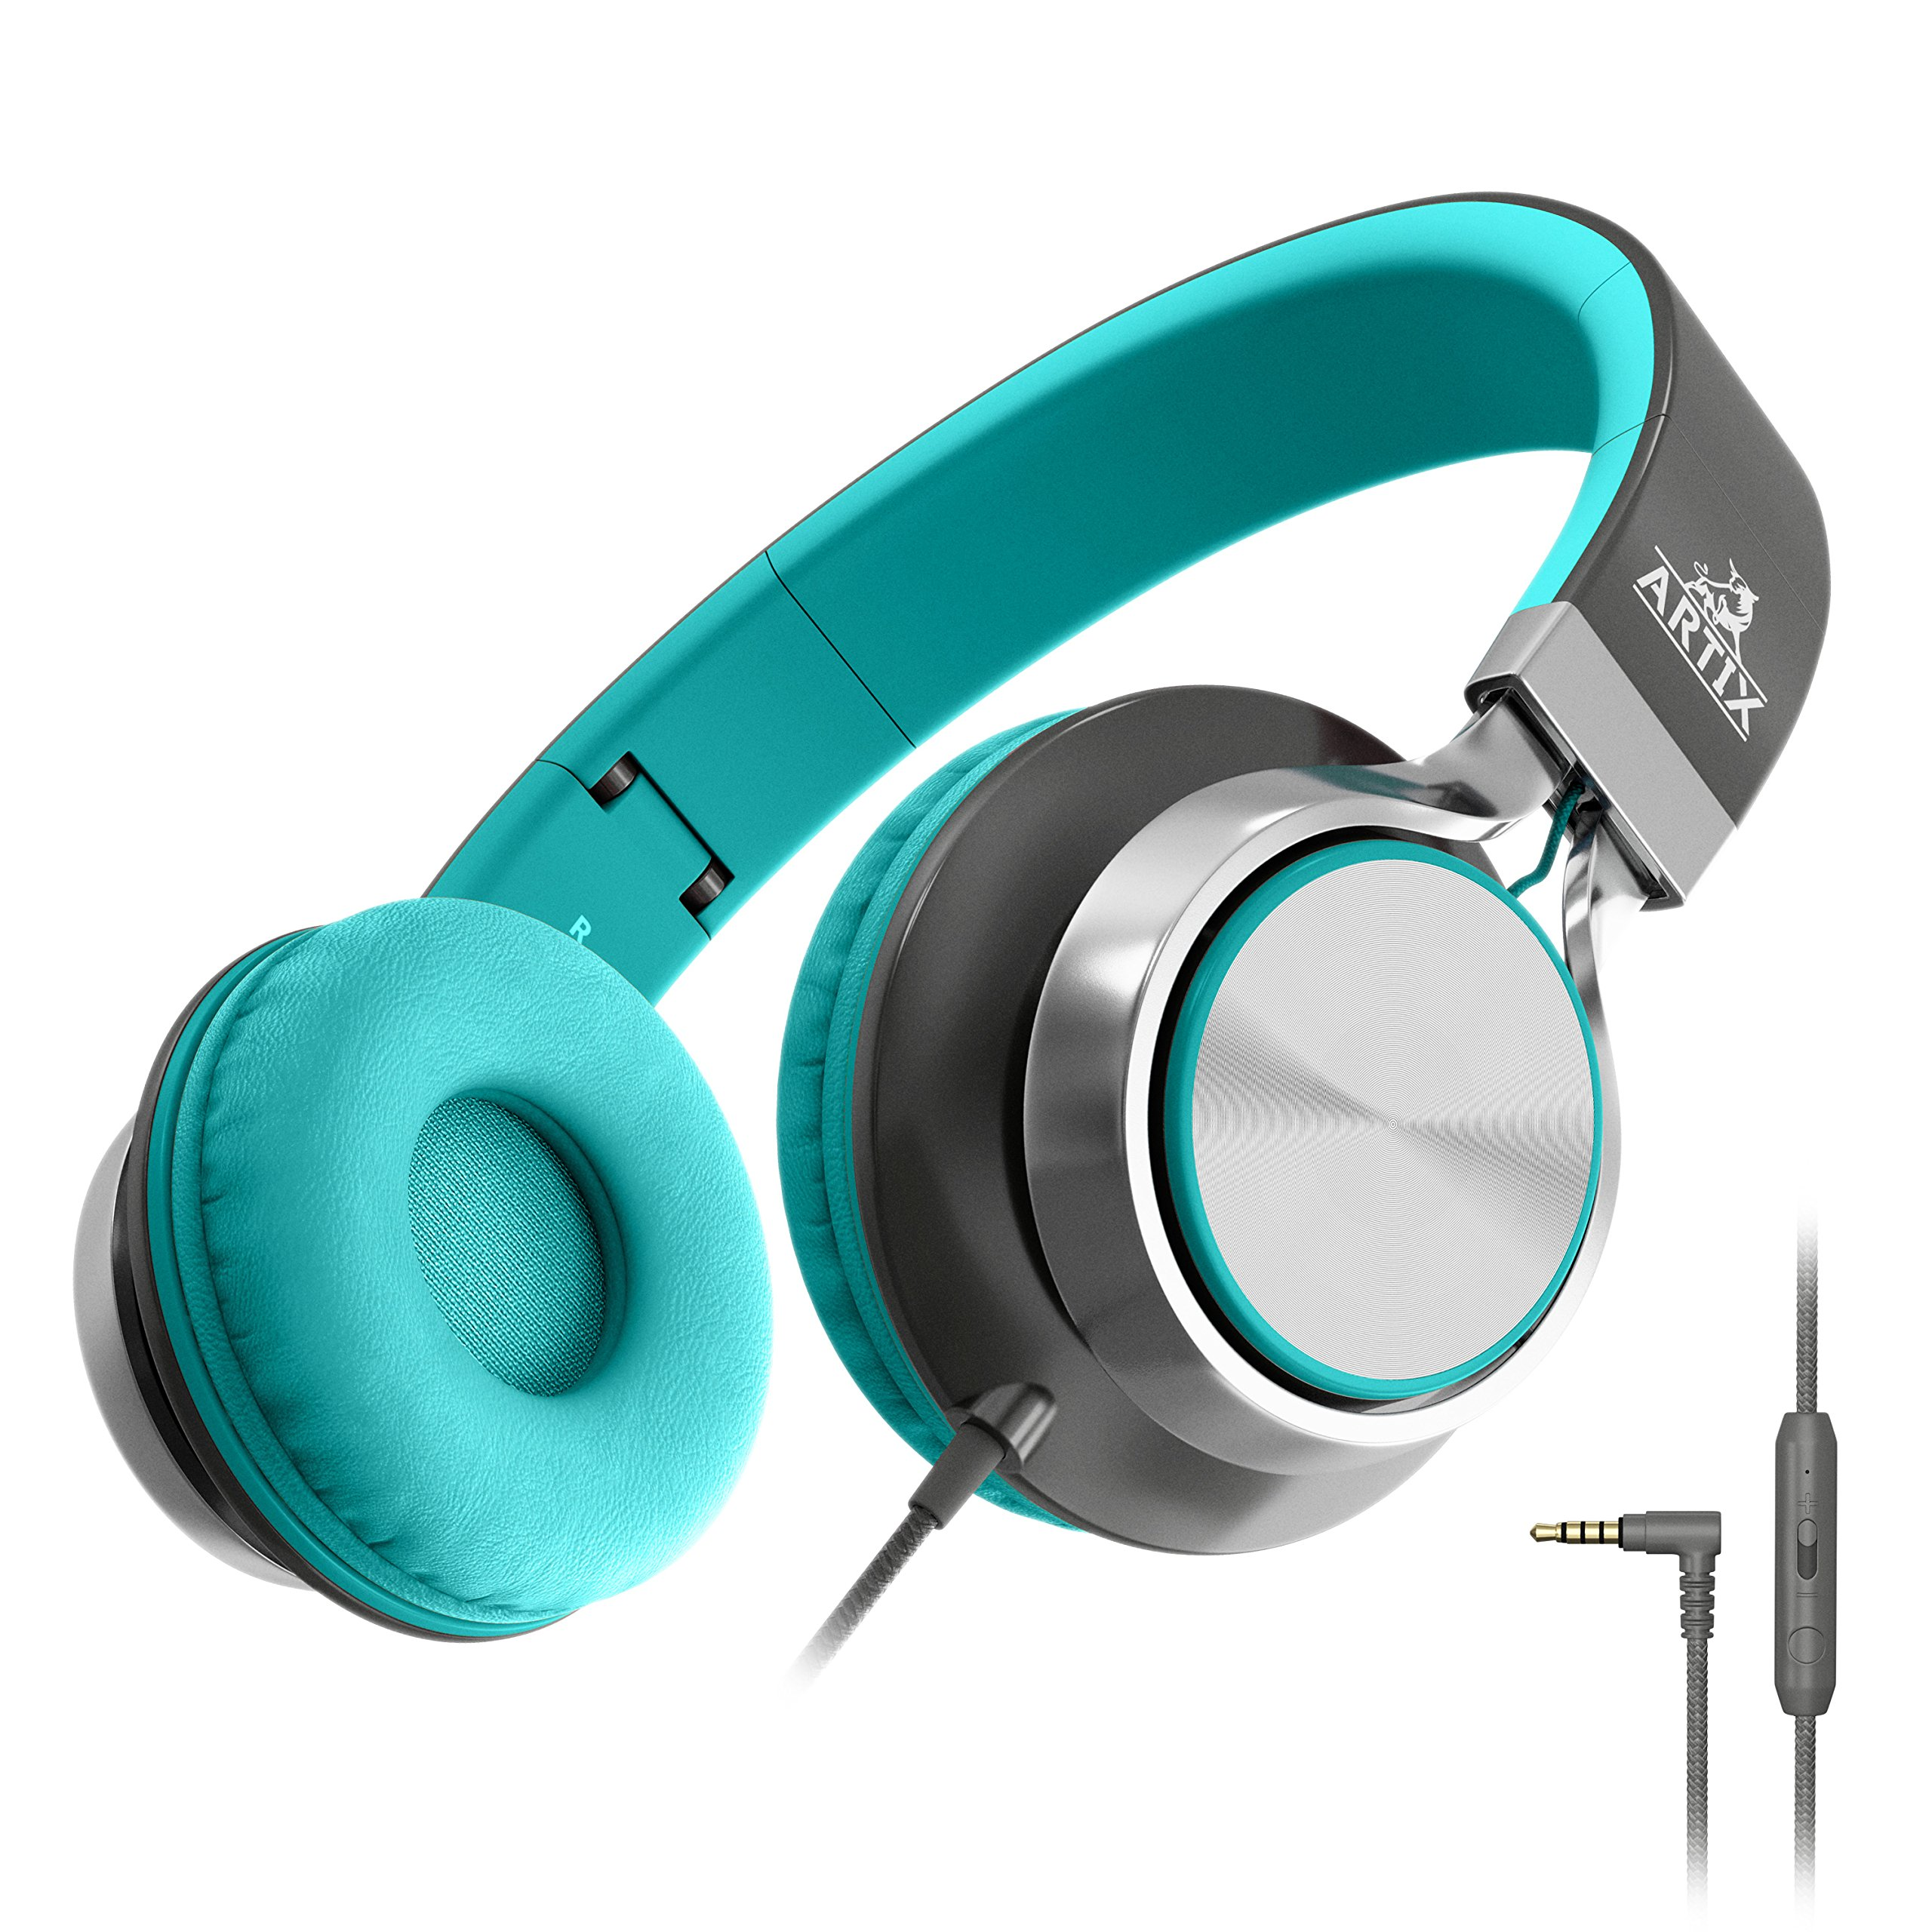 Artix CL750 Foldable Headphones with Microphone and Volume Control, On-Ear Stereo Earphones, Headset for Cellphones Tablets Smartphones Laptop Computer (Mint/Gray) by ARTIX